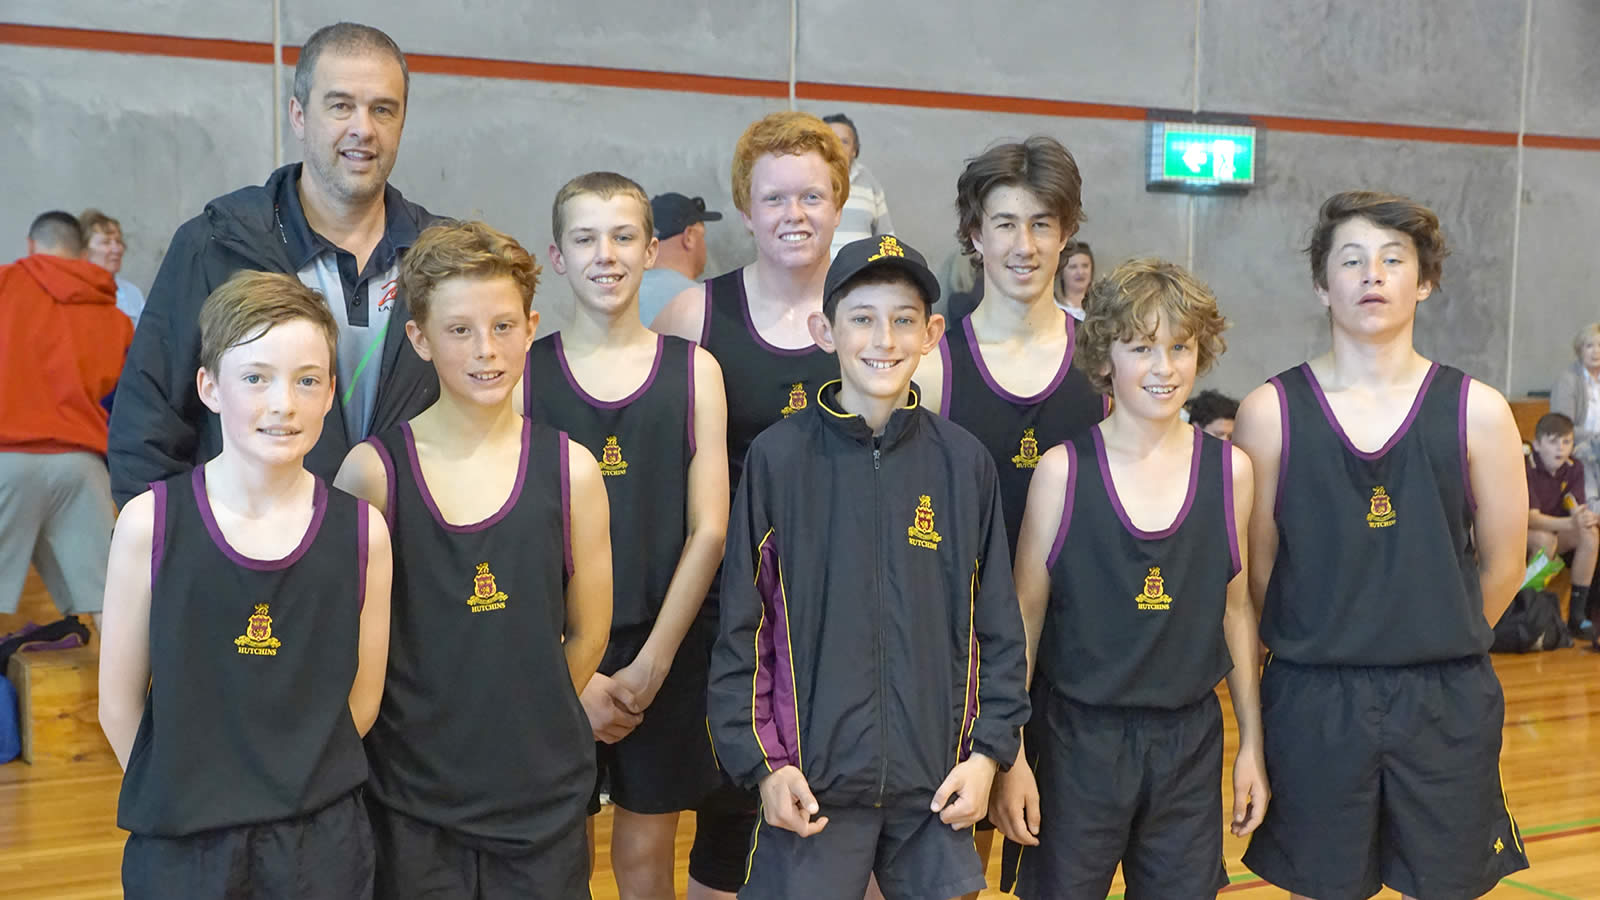 Year 7–8 Basketball Team (left to right): Campbell Baker, Rafael Gasset, Luke Harris, Jesse Wright, Tim Mitchell, Sam Conway, Archie Stewart, Callum Rogers and Coach Anthony Stewart.